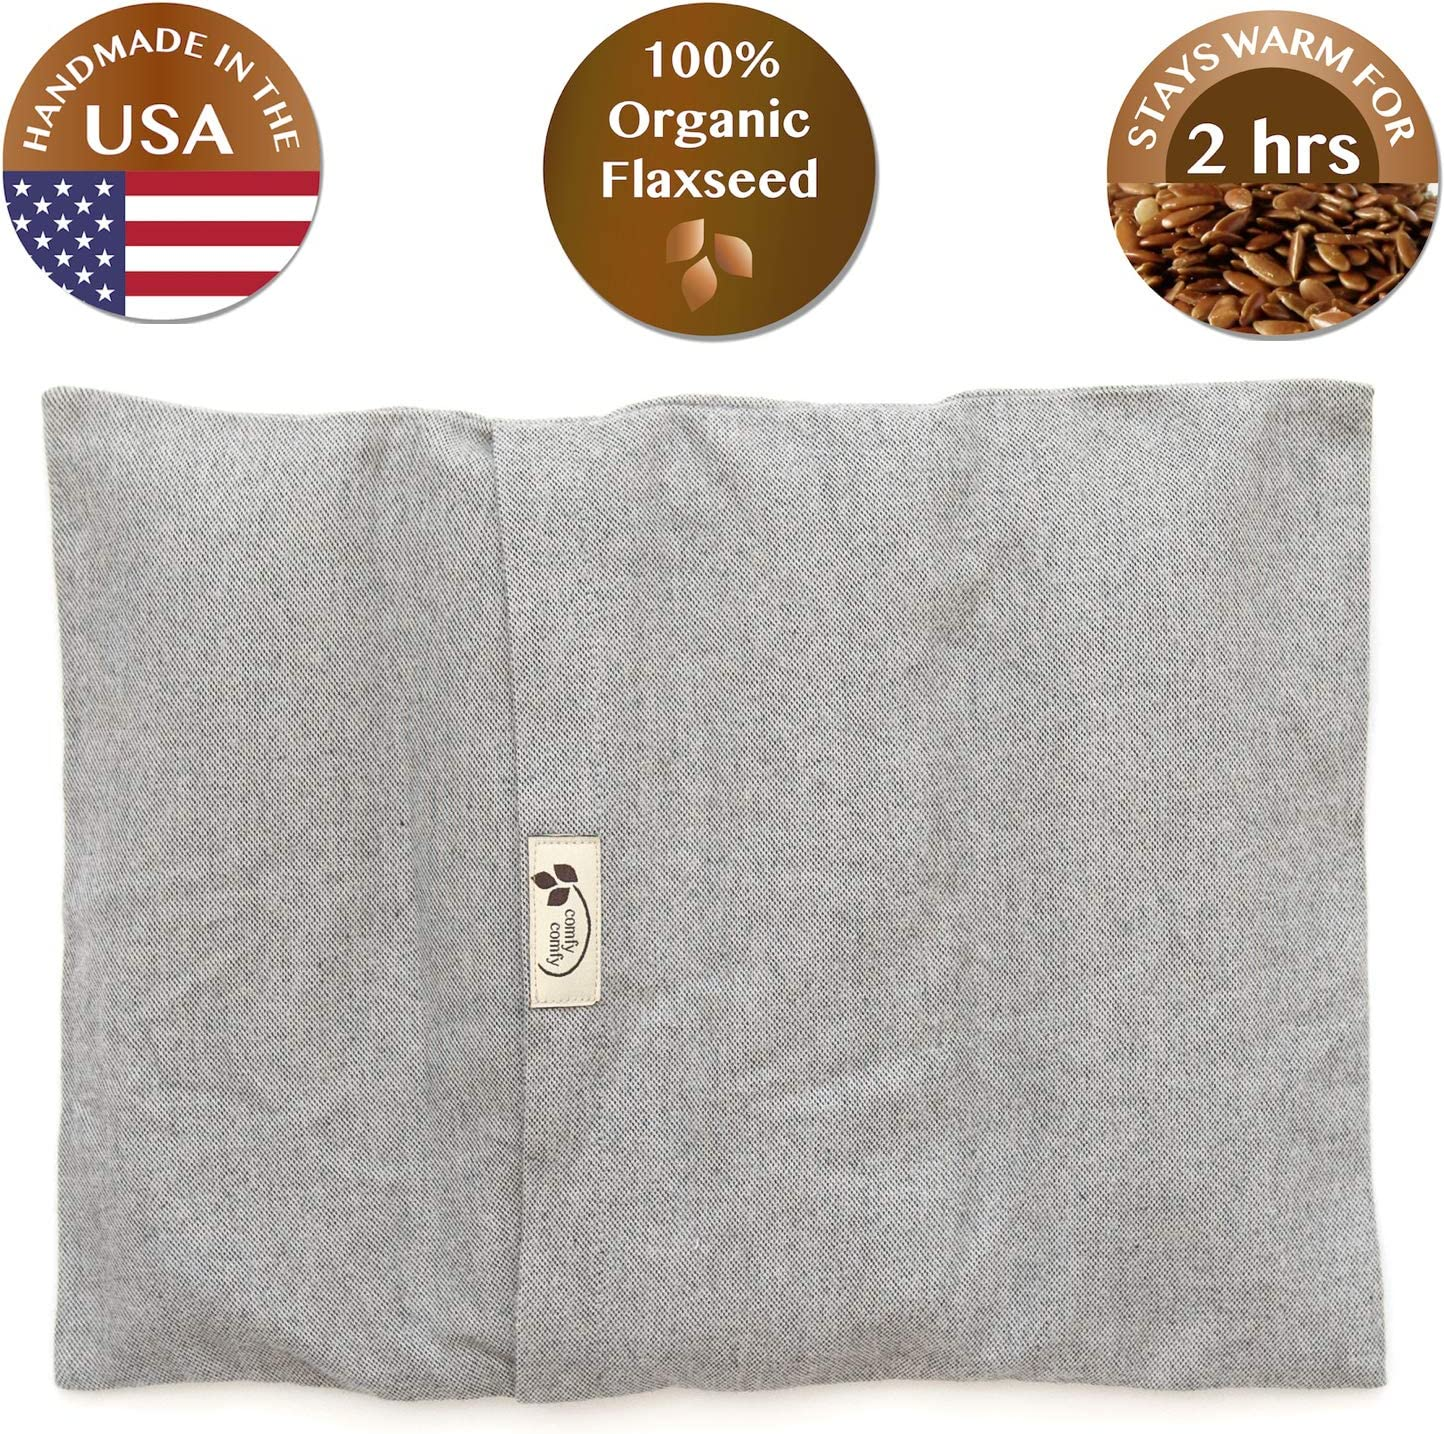 "Comfy Warmer Microwaveable Organic Flaxseed Heating Pad with Washable Case Made in The USA (15"" x 11"", Grey)"